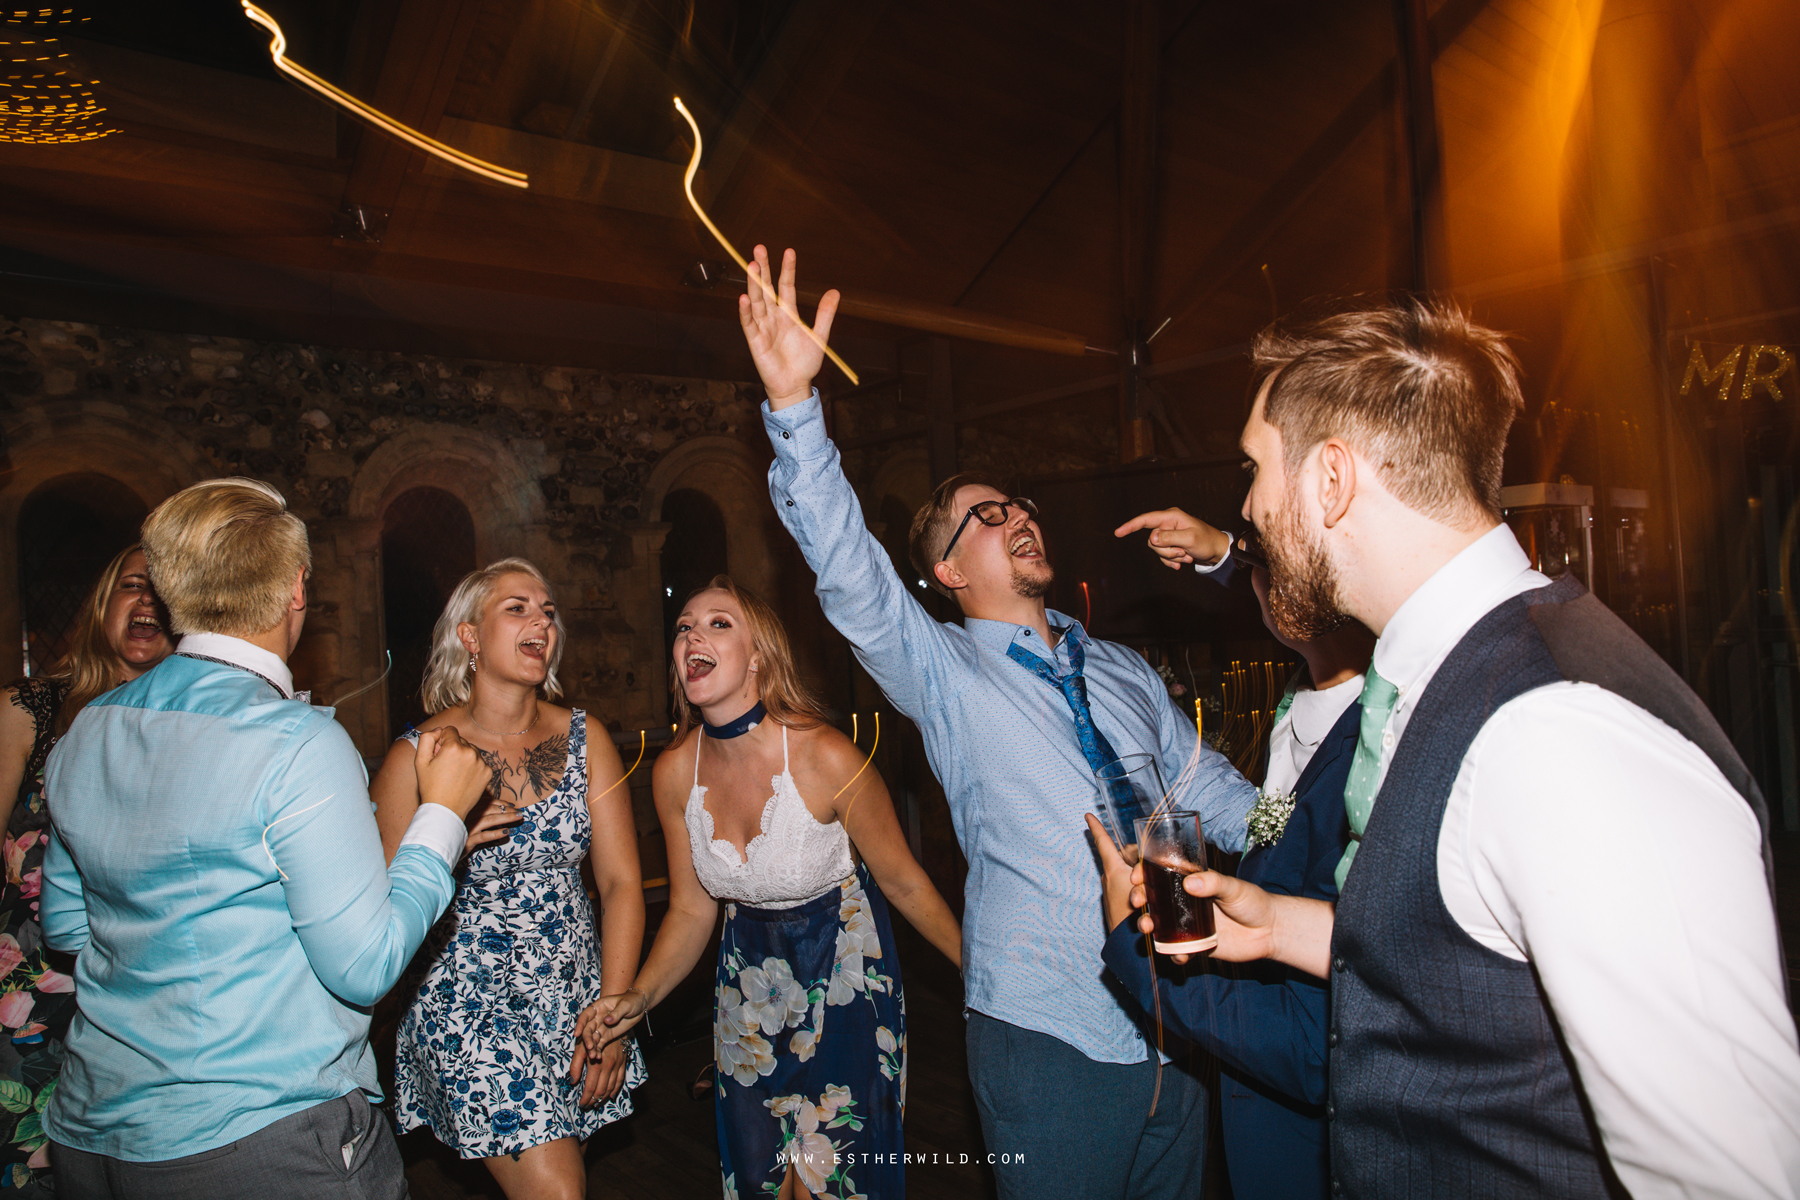 Norwich_Castle_Arcade_Grosvenor_Chip_Birdcage_Cathedral_Cloisters_Refectory_Wedding_Photography_Esther_Wild_Photographer_Norfolk_Kings_Lynn_3R8A3525.jpg